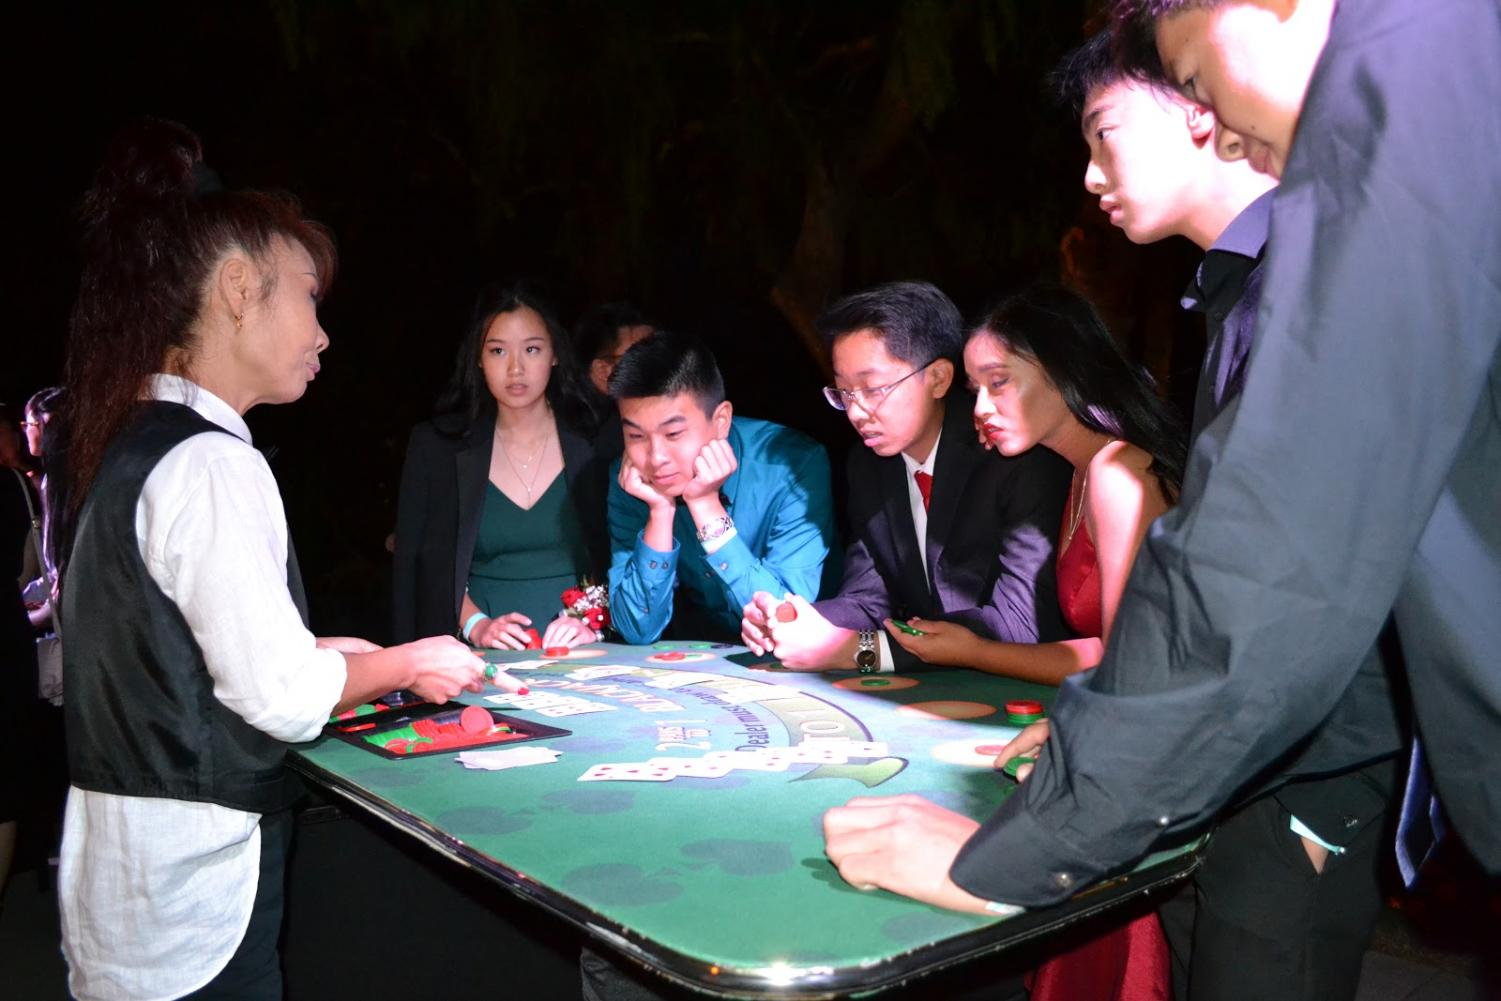 Students at the homecoming dance gather around the Blackjack table